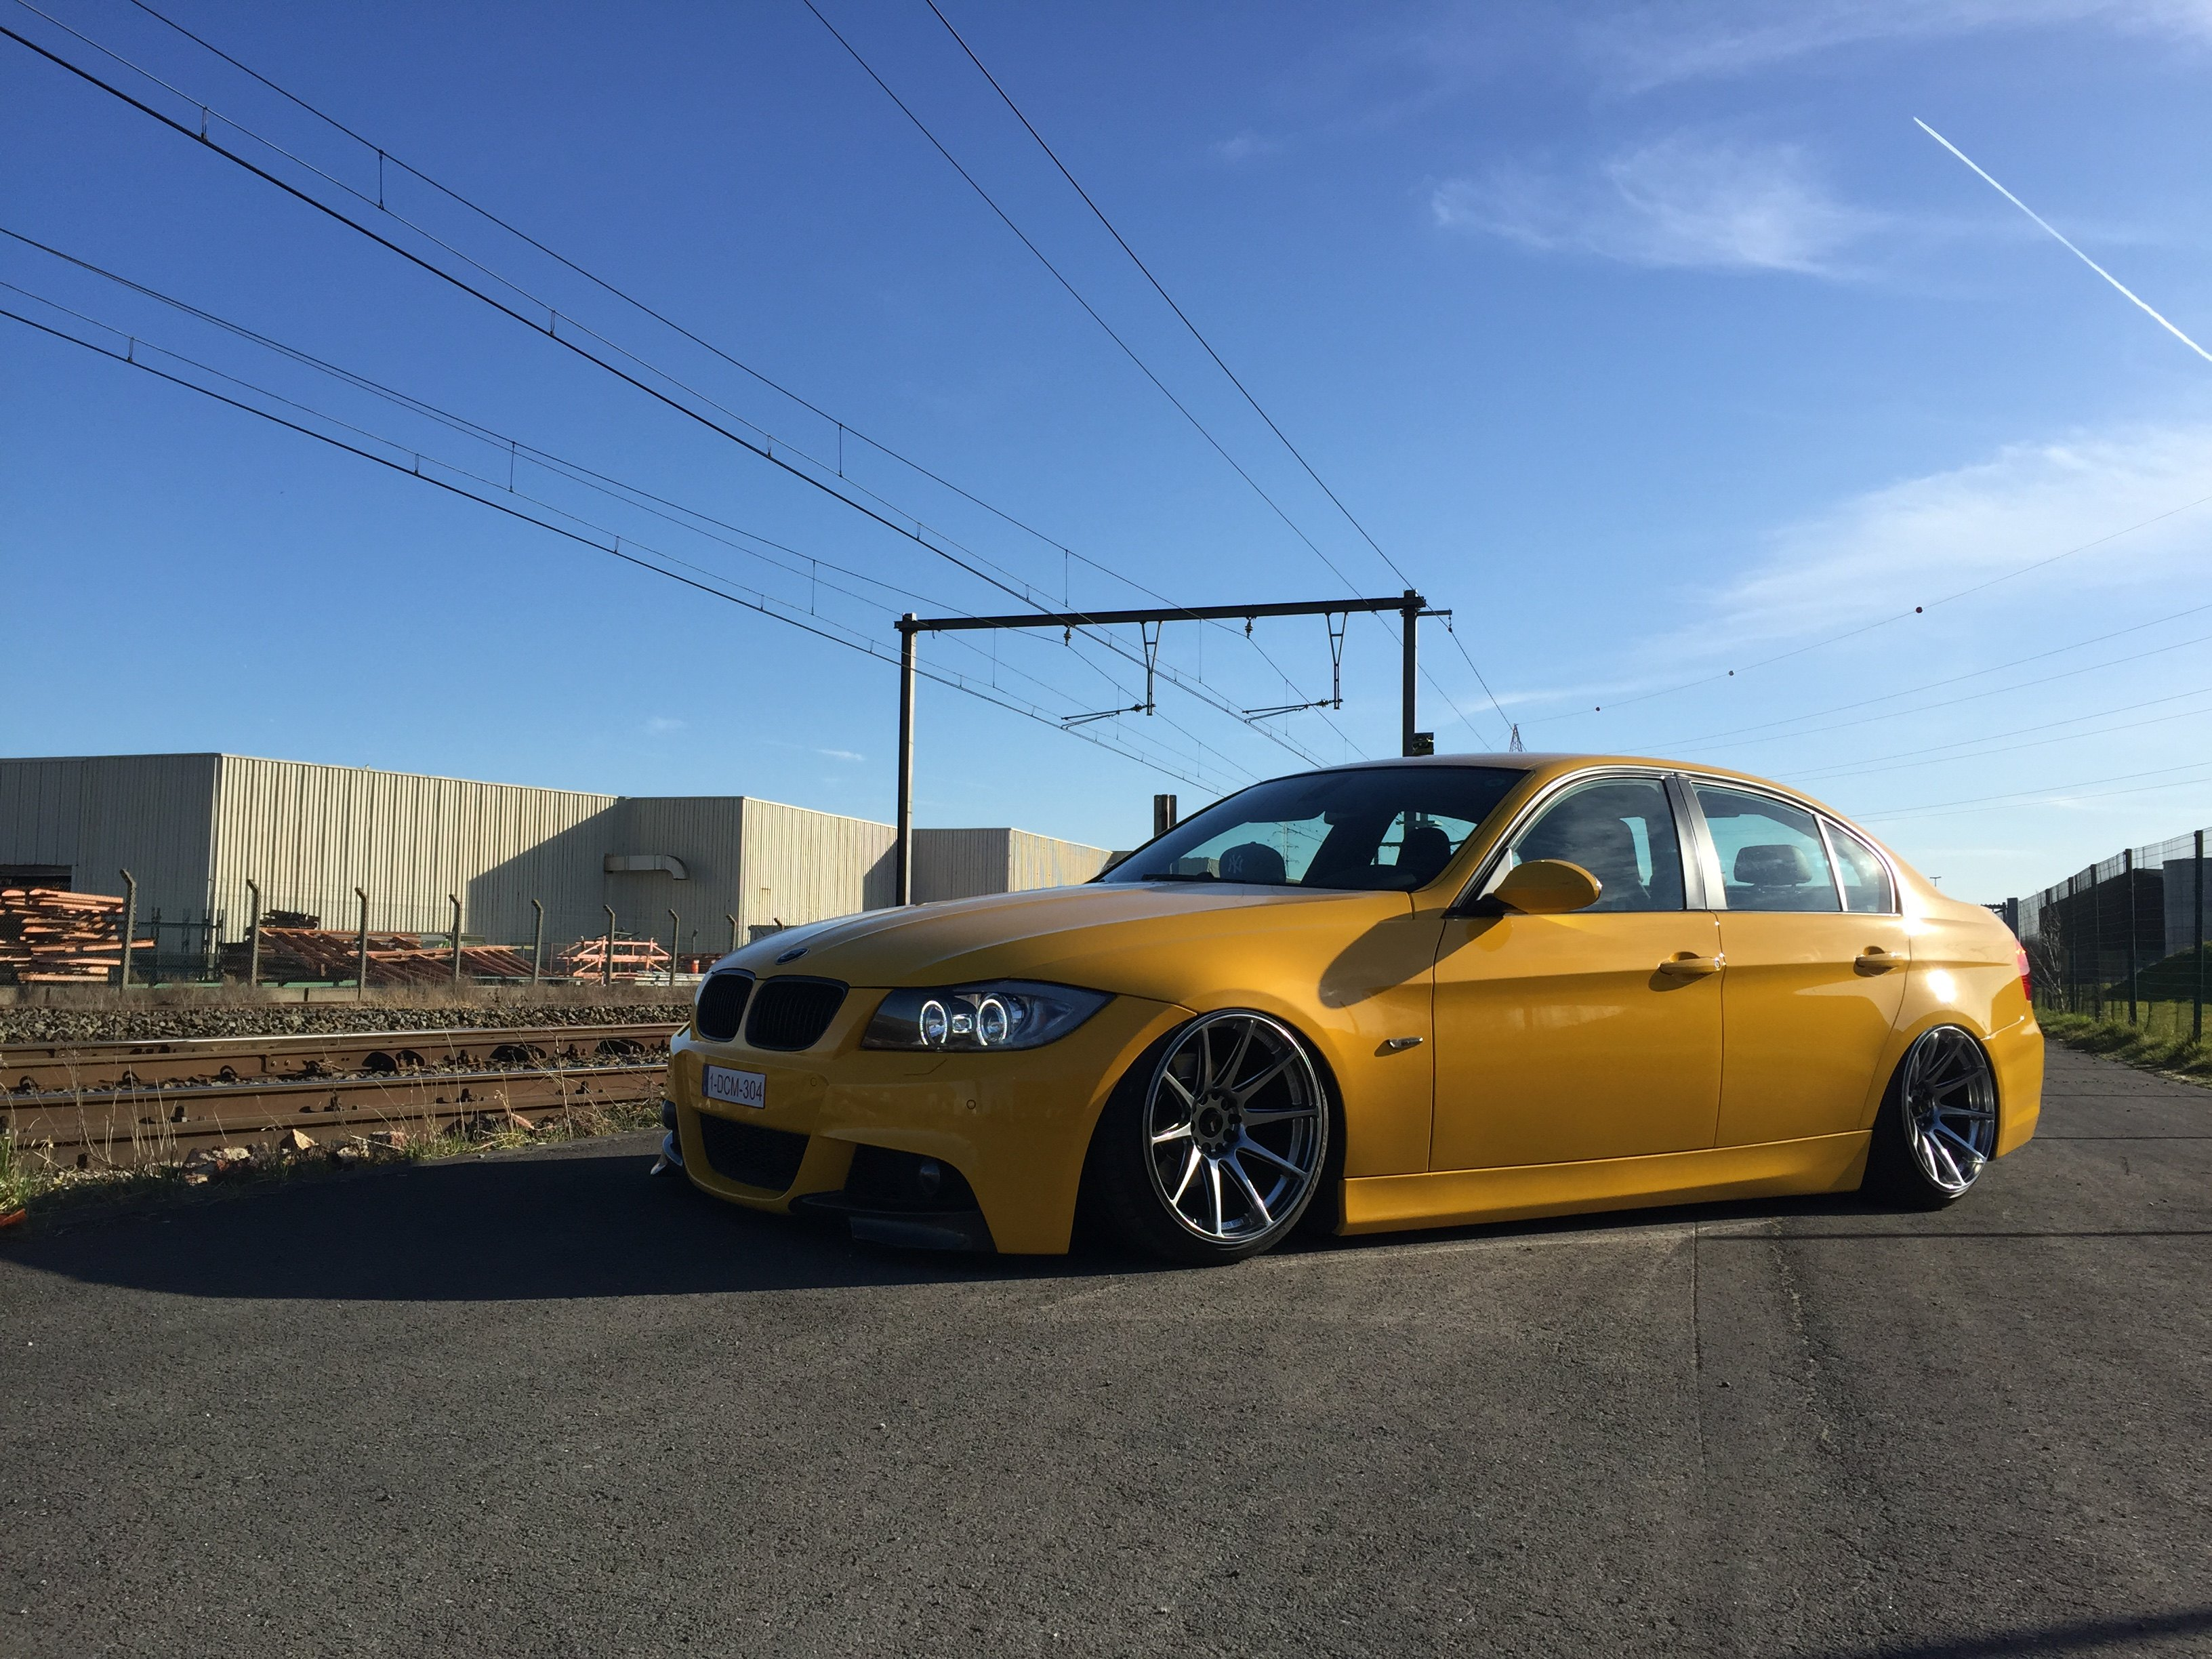 Yellow Bmw 3 Series Customized In Jdm Style Carid Com Gallery